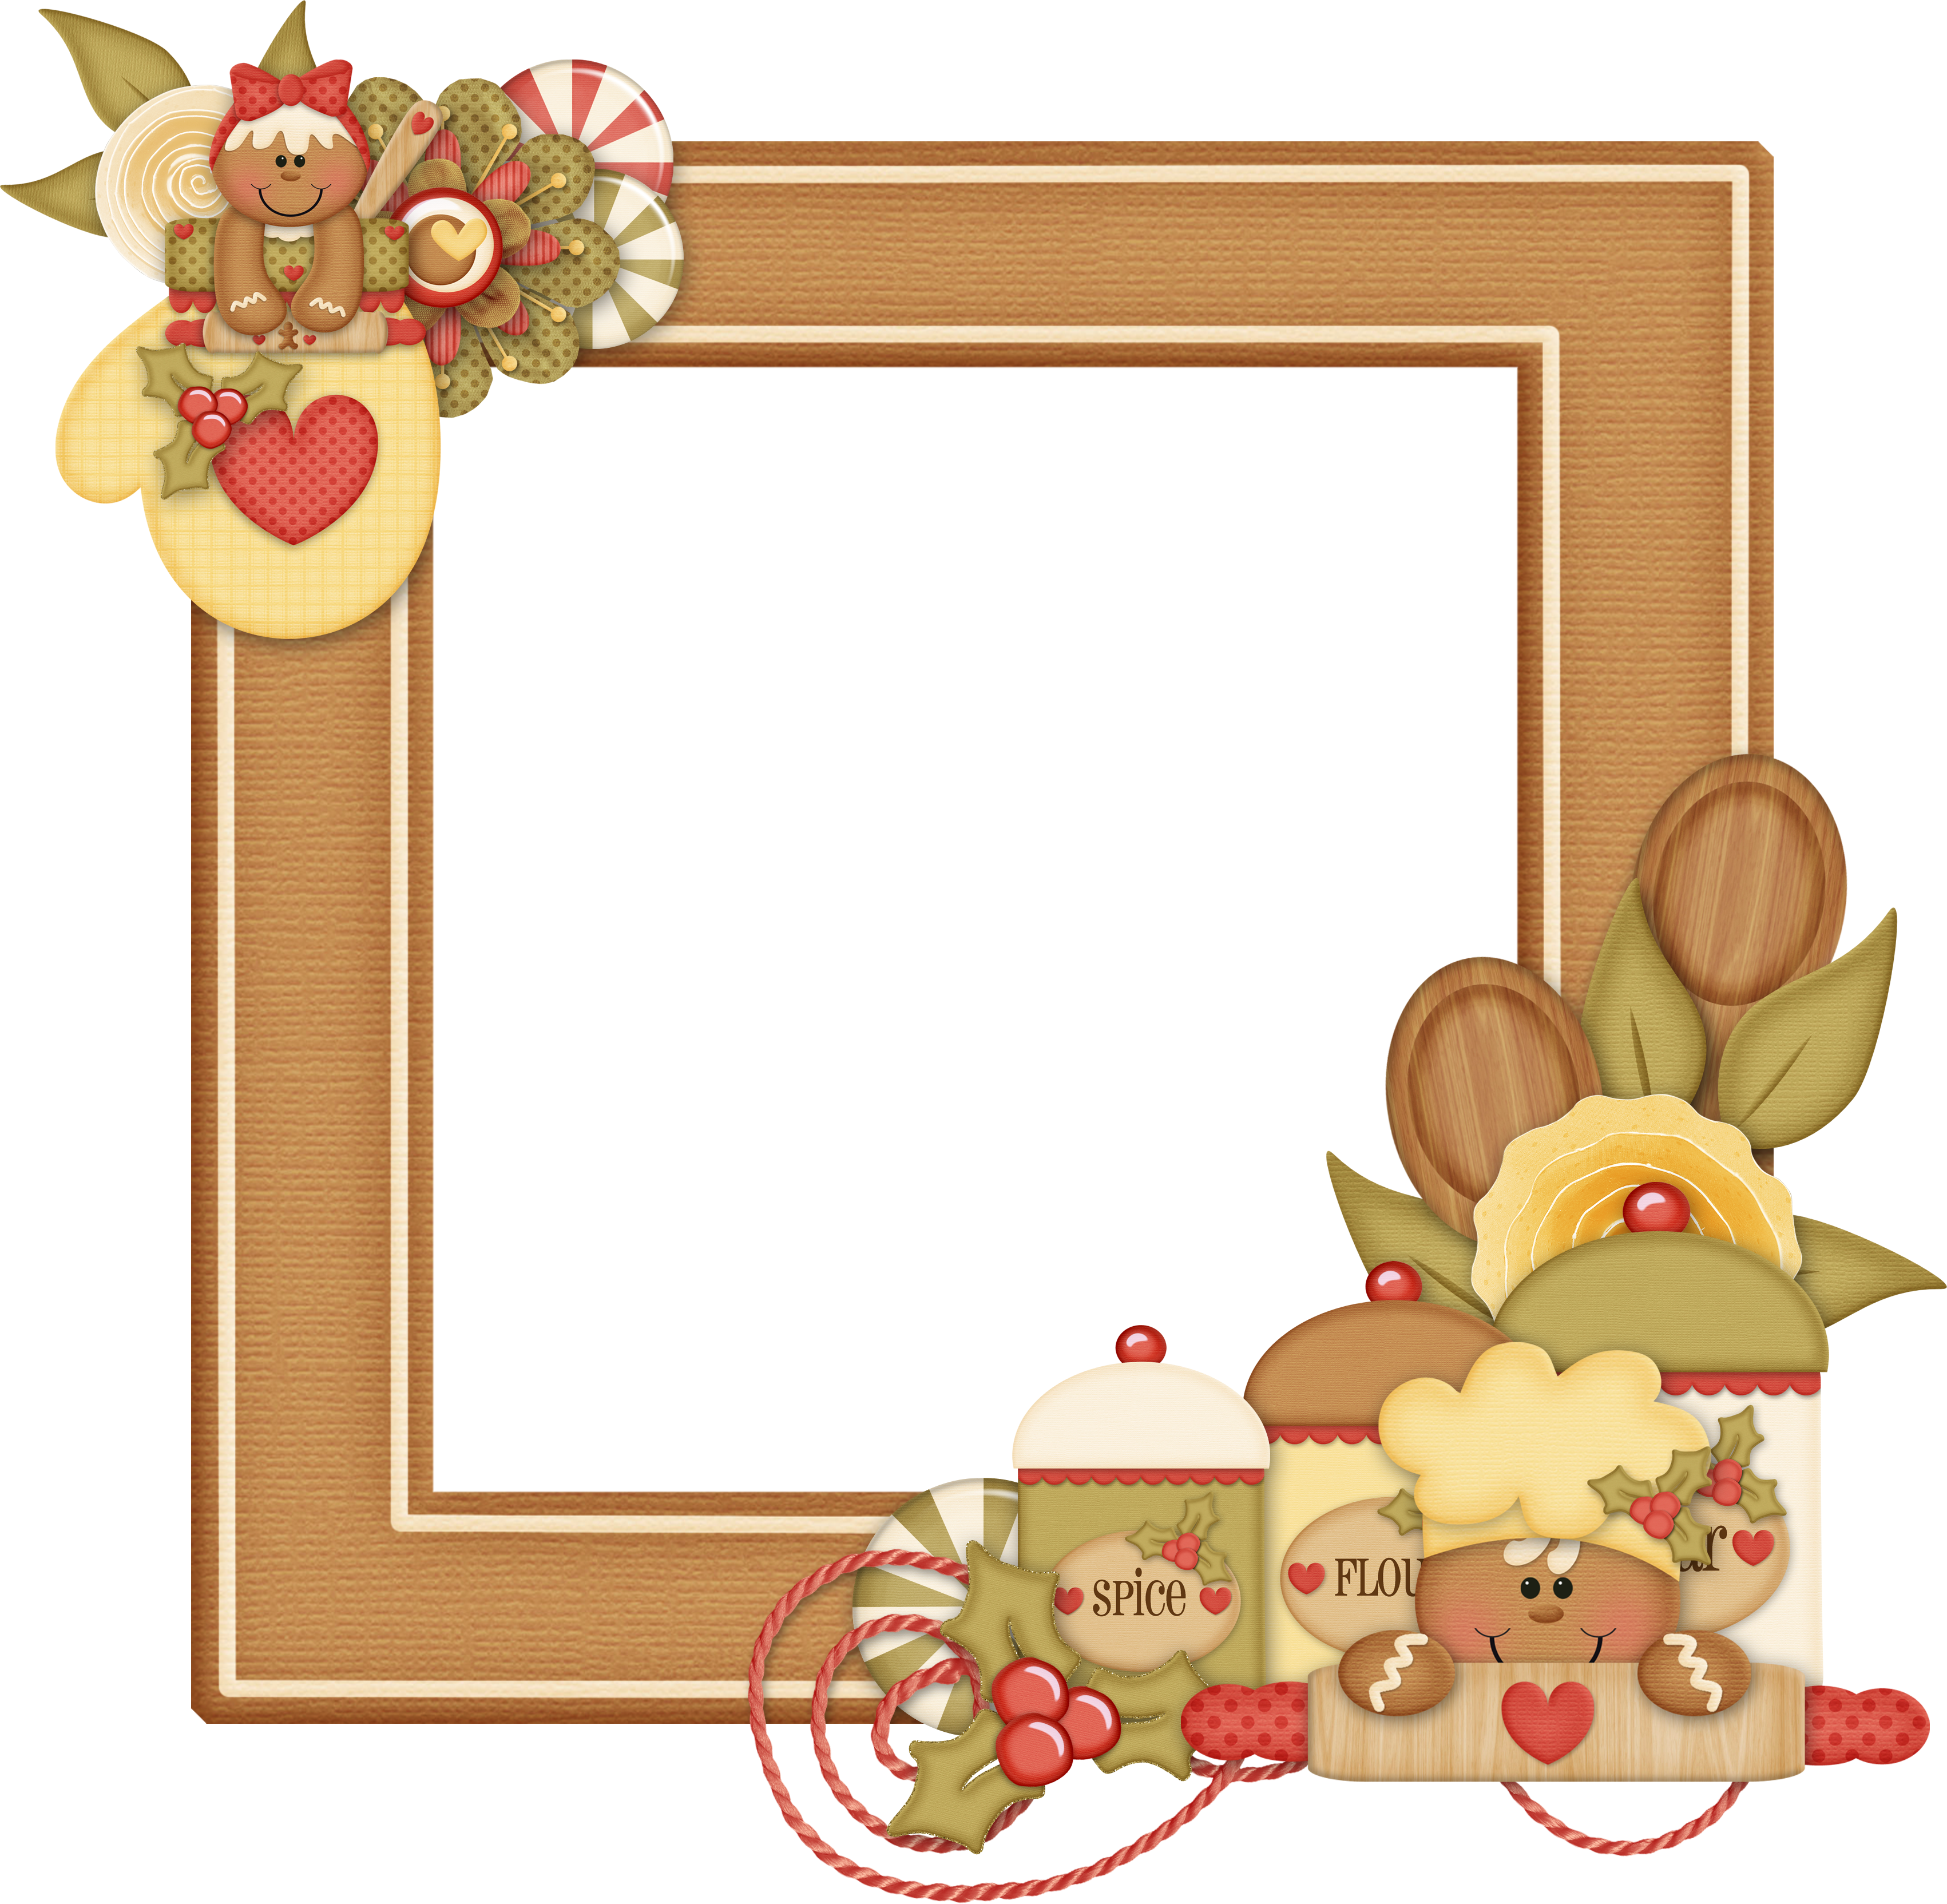 Pin by ana lumbreras. Gingerbread clipart frame